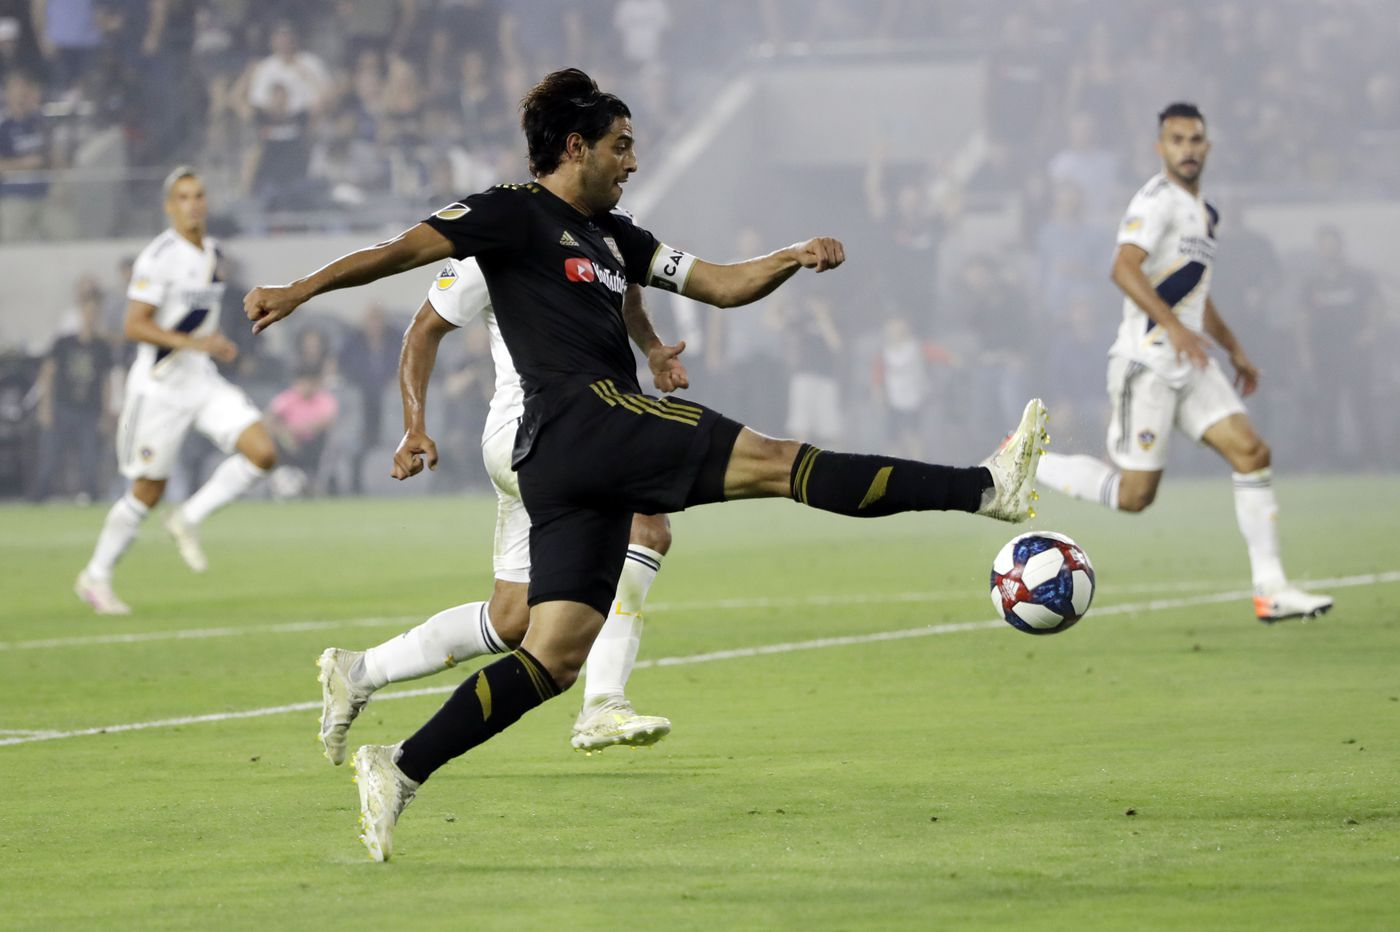 Union to face LAFC team that's MLS best, and perhaps best ever